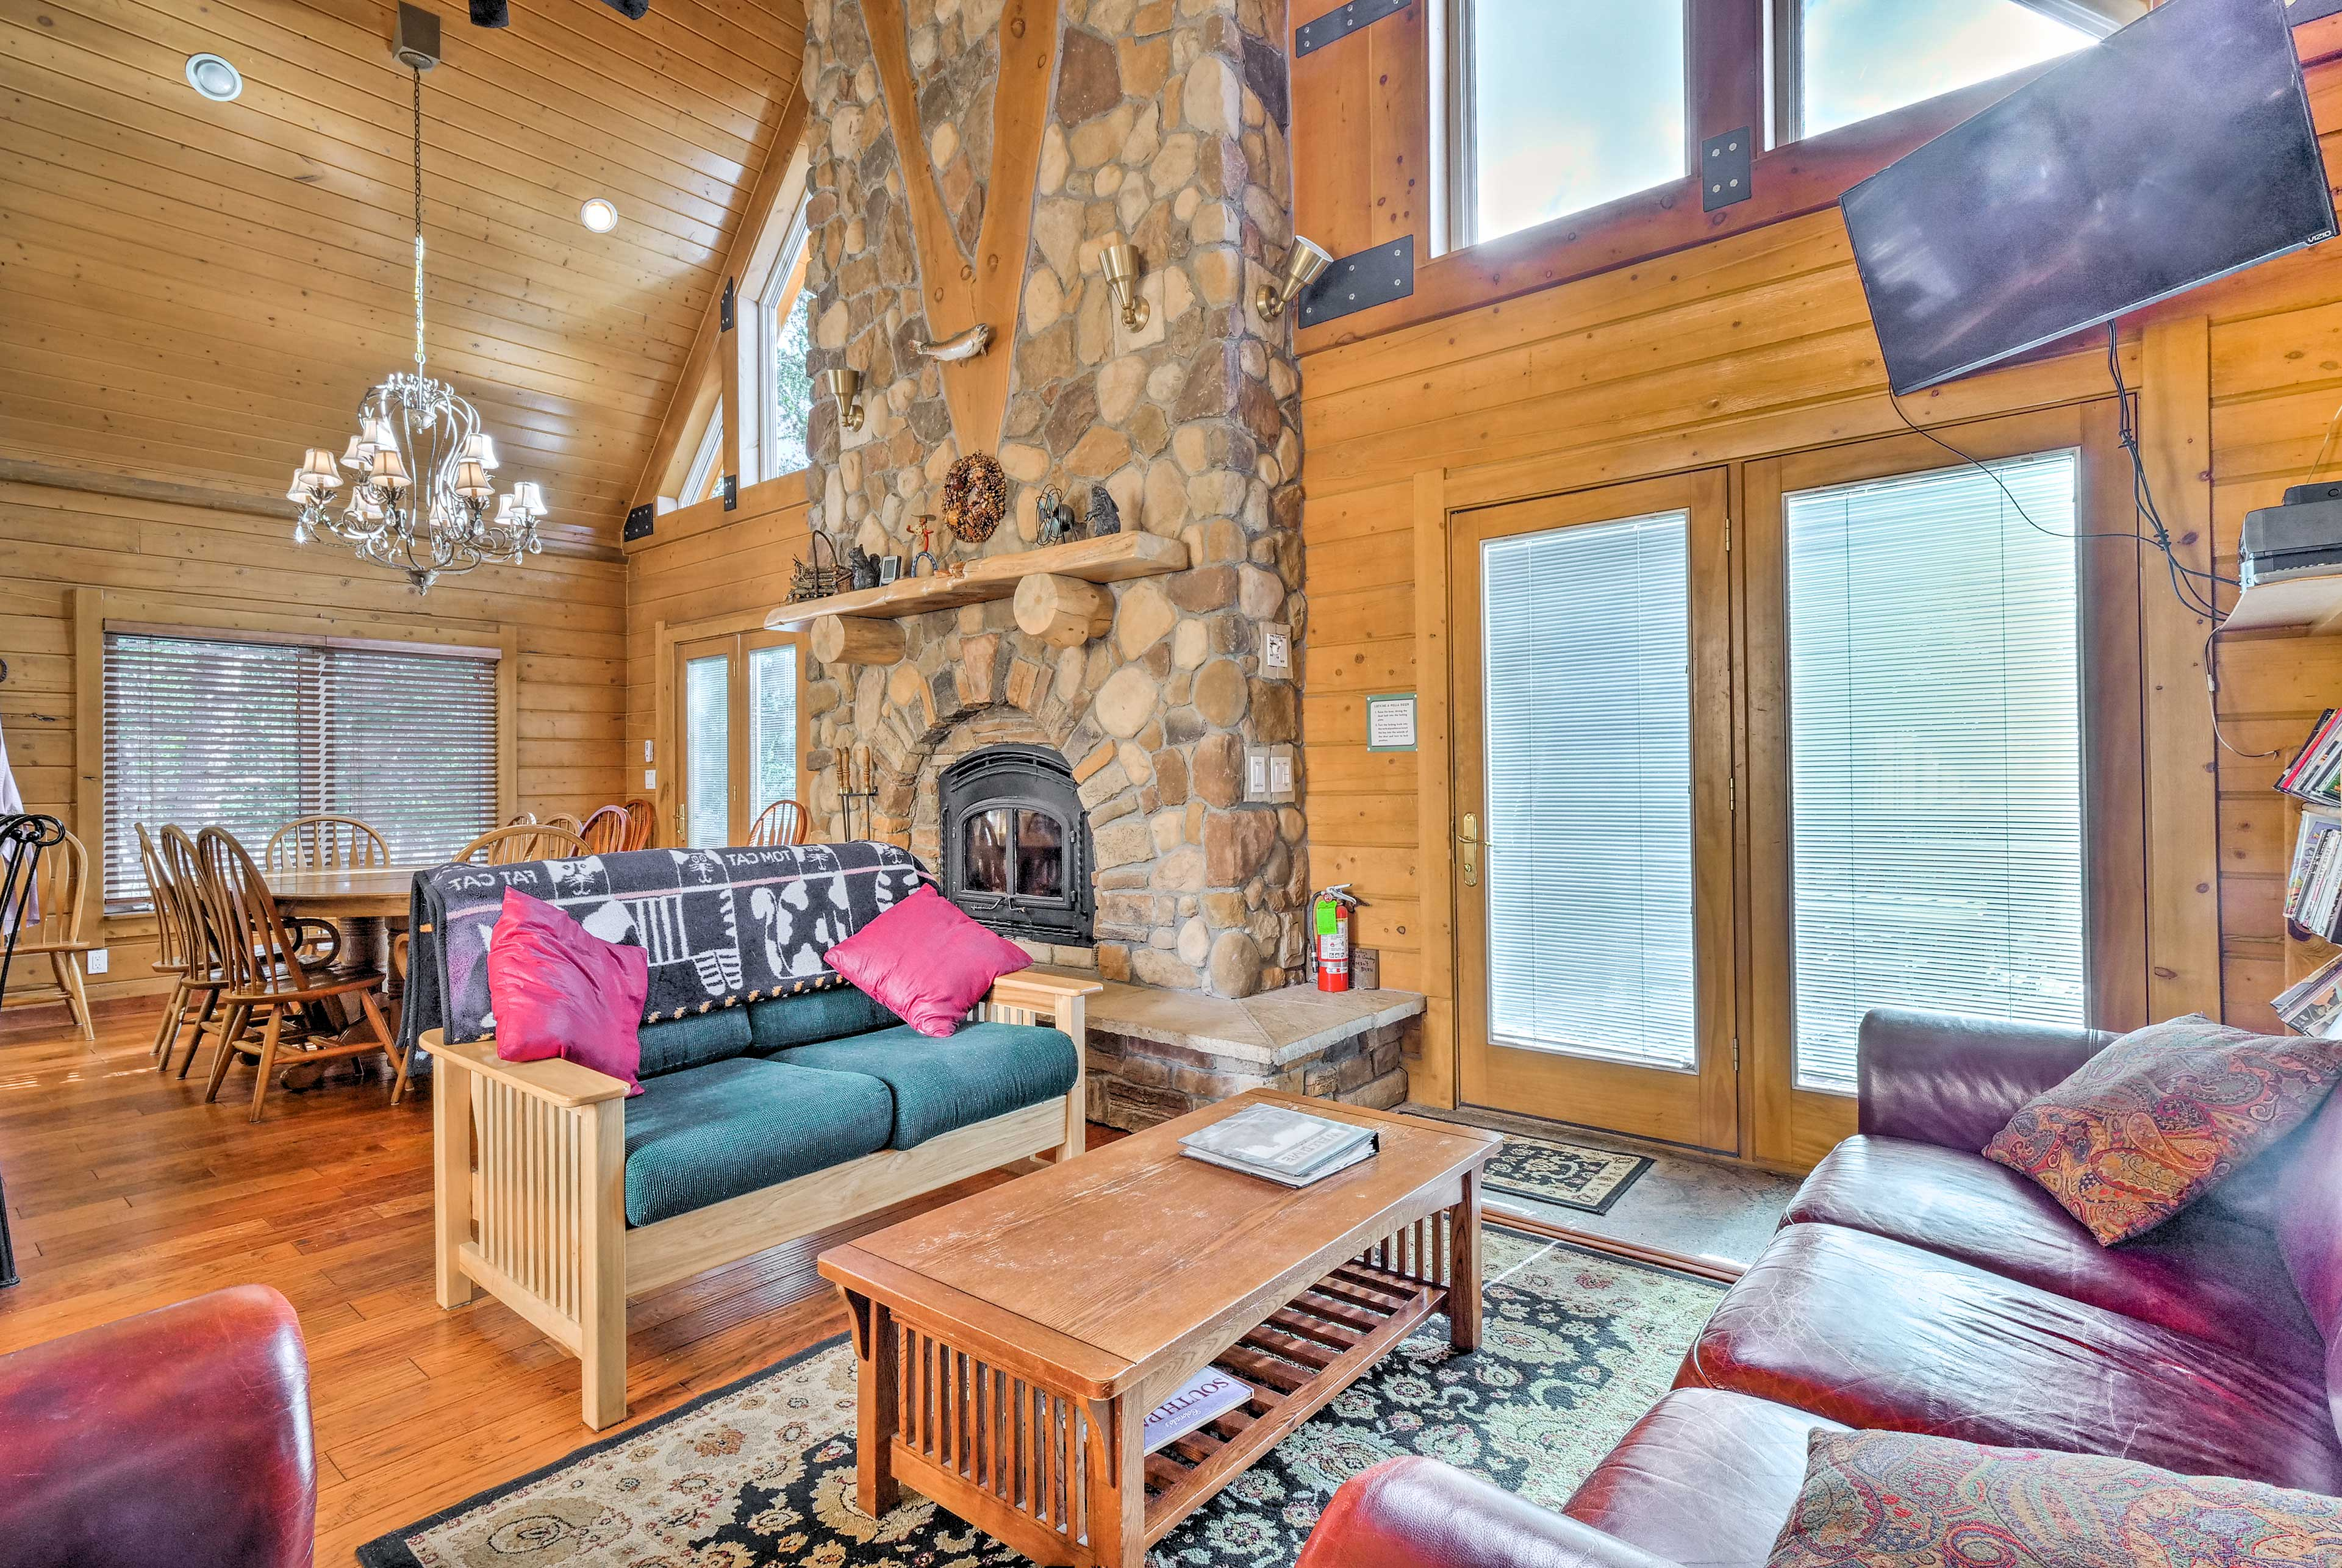 A stunning river rock fireplace serves as the room's focal point.